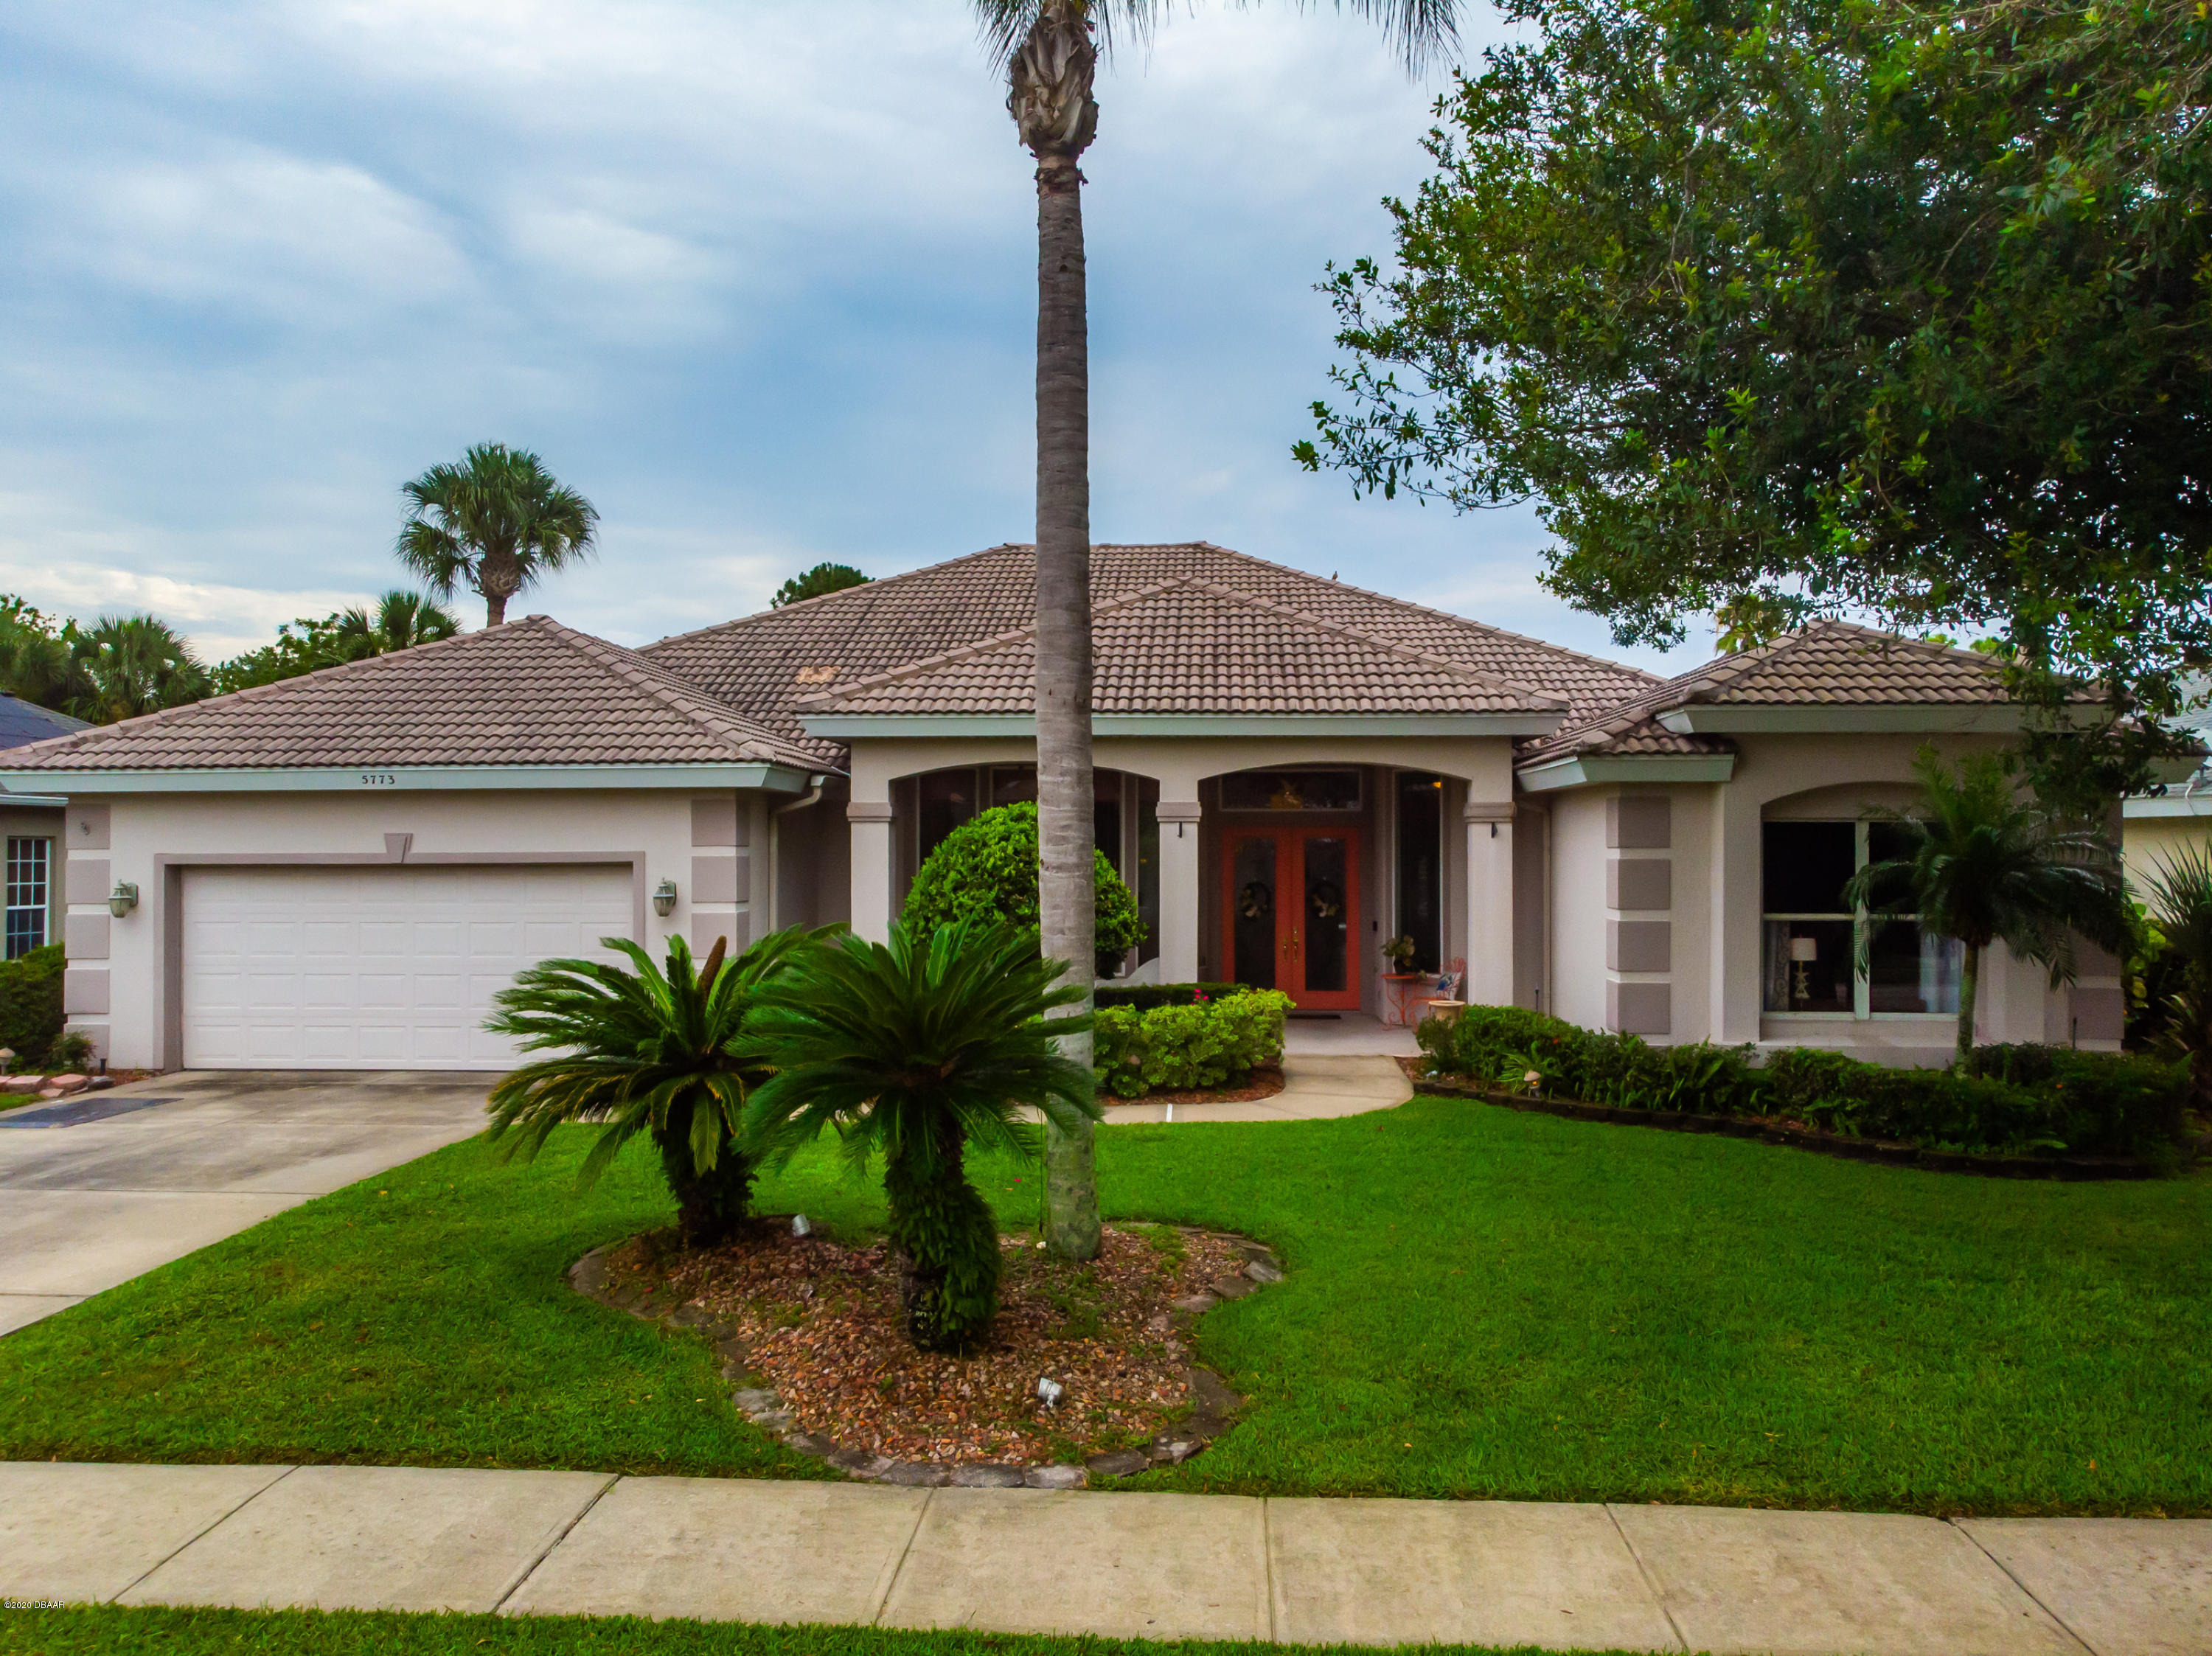 Photo of 5773 Pendlebury Court, Port Orange, FL 32127